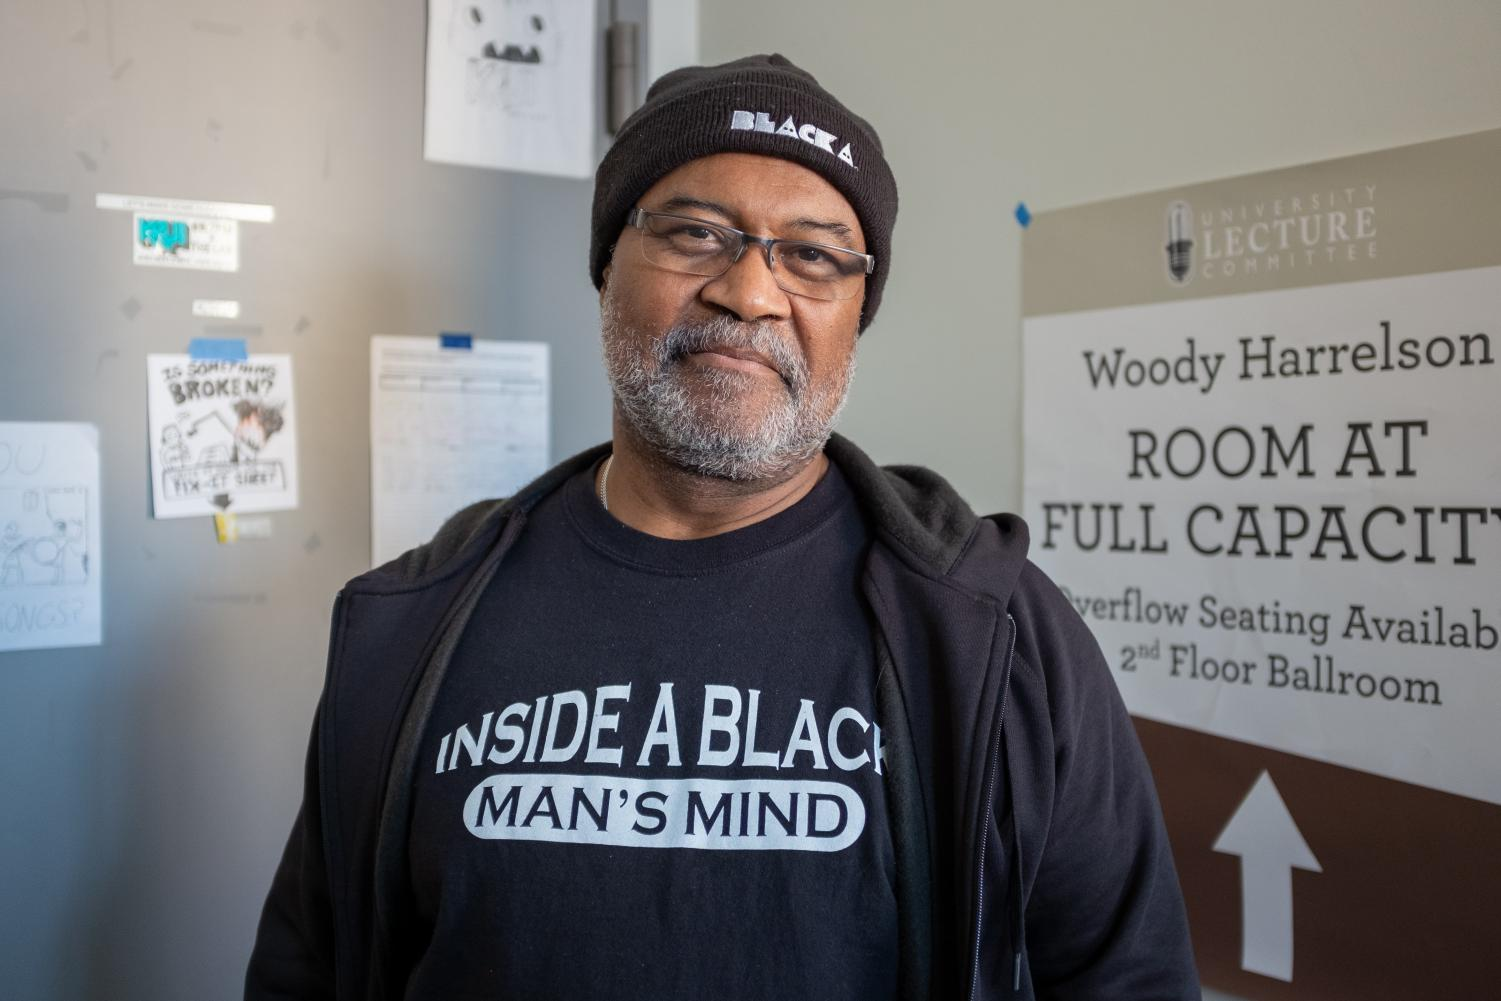 Ron Stallworth poses for a portrait on Wednesday, January 23. Stallworth, whose memoir